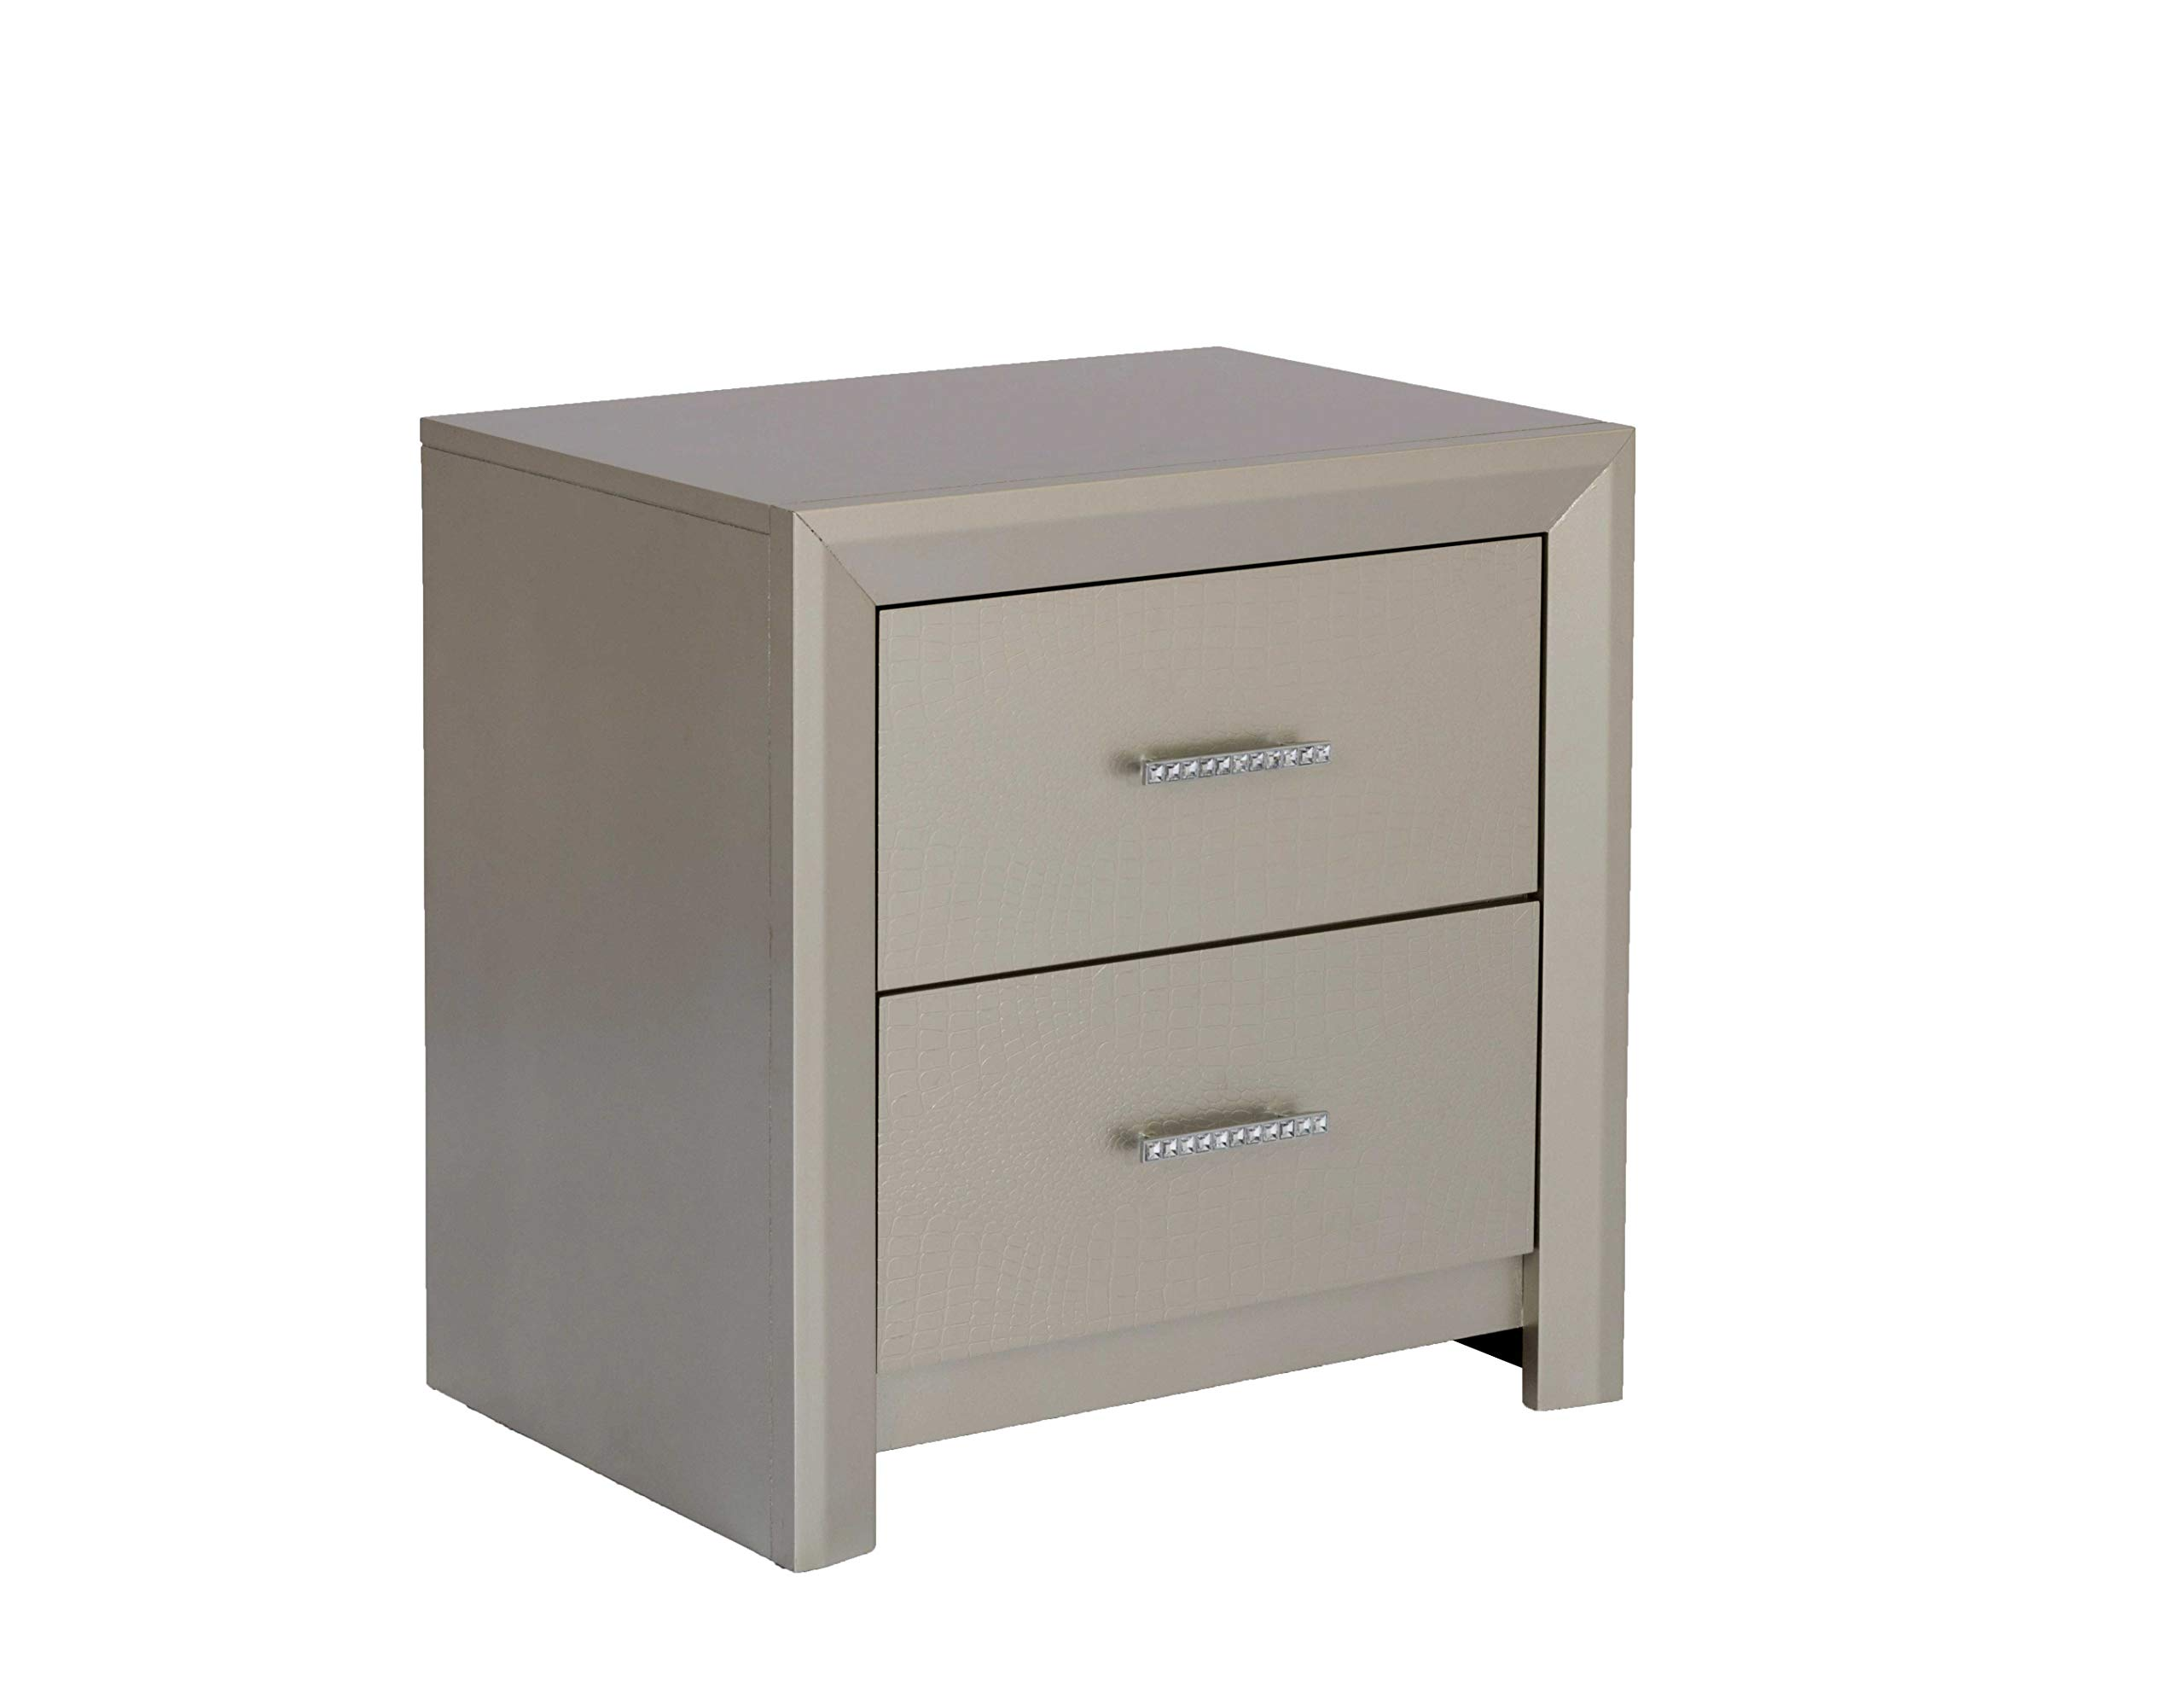 Best Quality Furniture Nightstand Only, Champagne Metallic by Best Quality